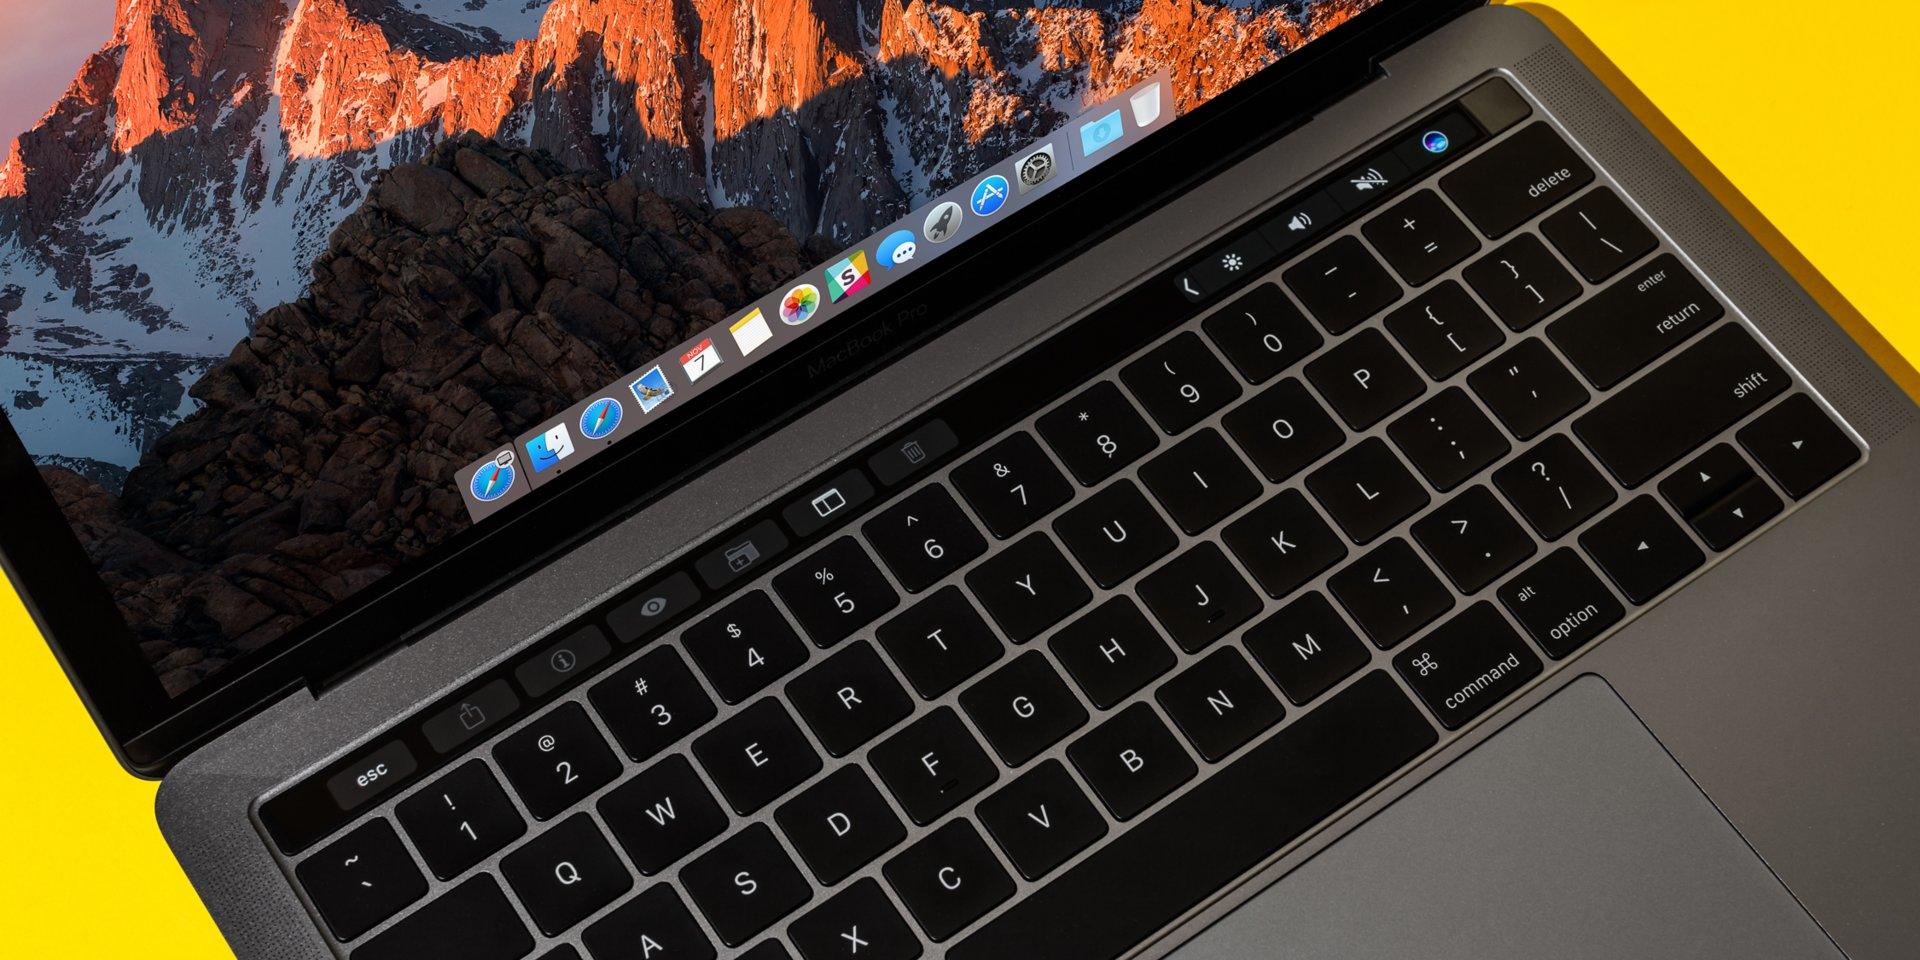 Apple spent $10,000 repairing his MacBook Pro. There was nothing wrong with it